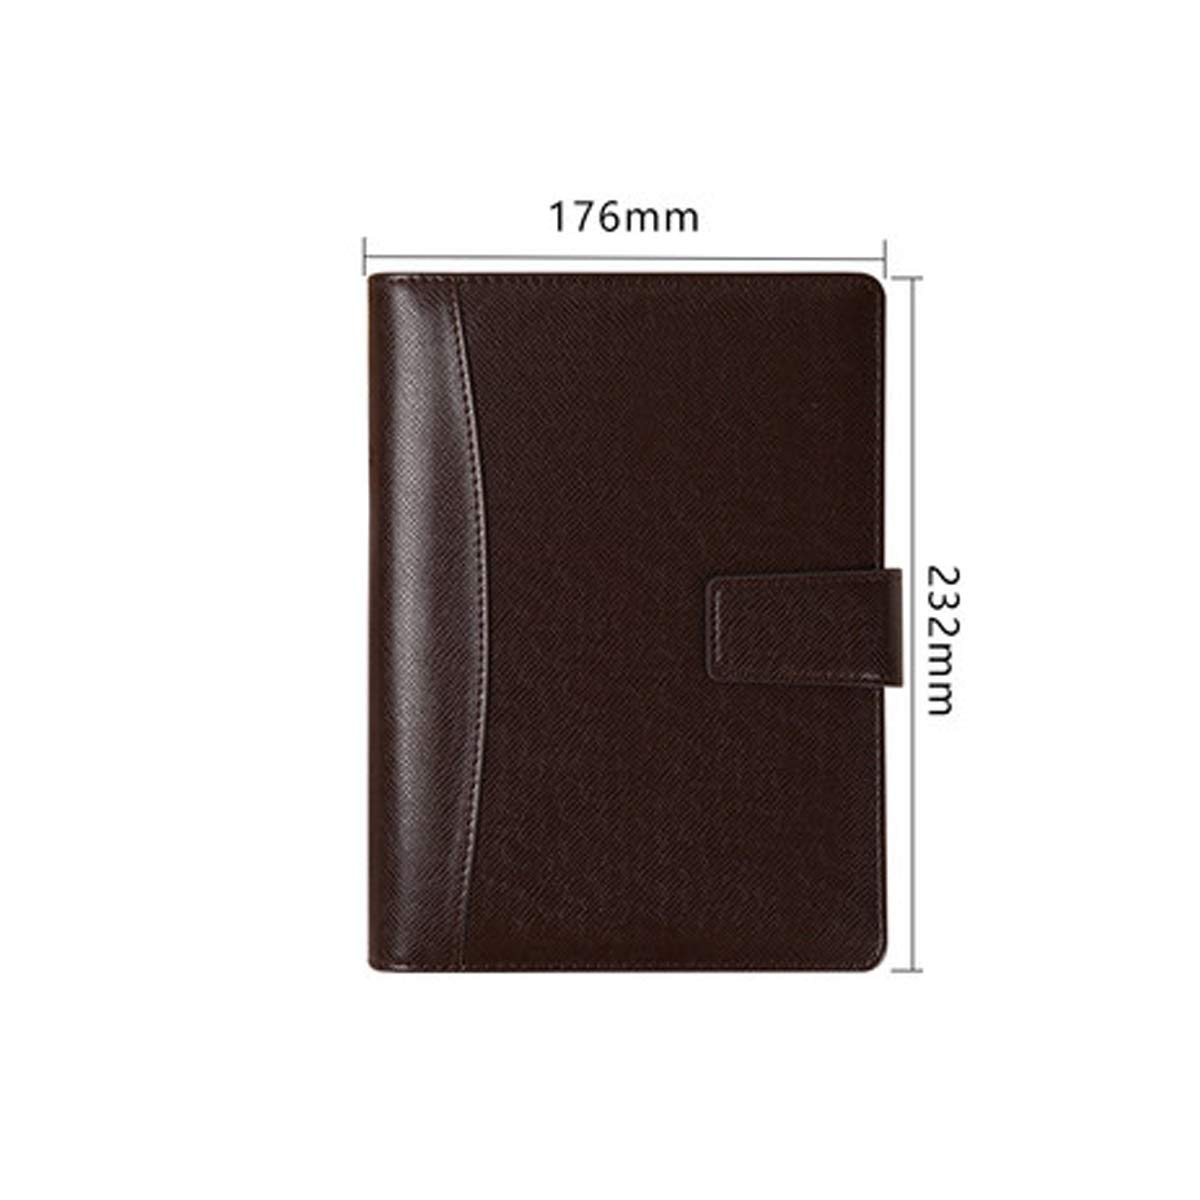 HAOYUSHANGMAO Business Gift Notebook, Gift Box Set, Thickened Simple Notepad, Company Work Meeting Record Book, Creative Stationery Leather Loose-Leaf Book, Best Gift (Color : Brown, Style : A5)